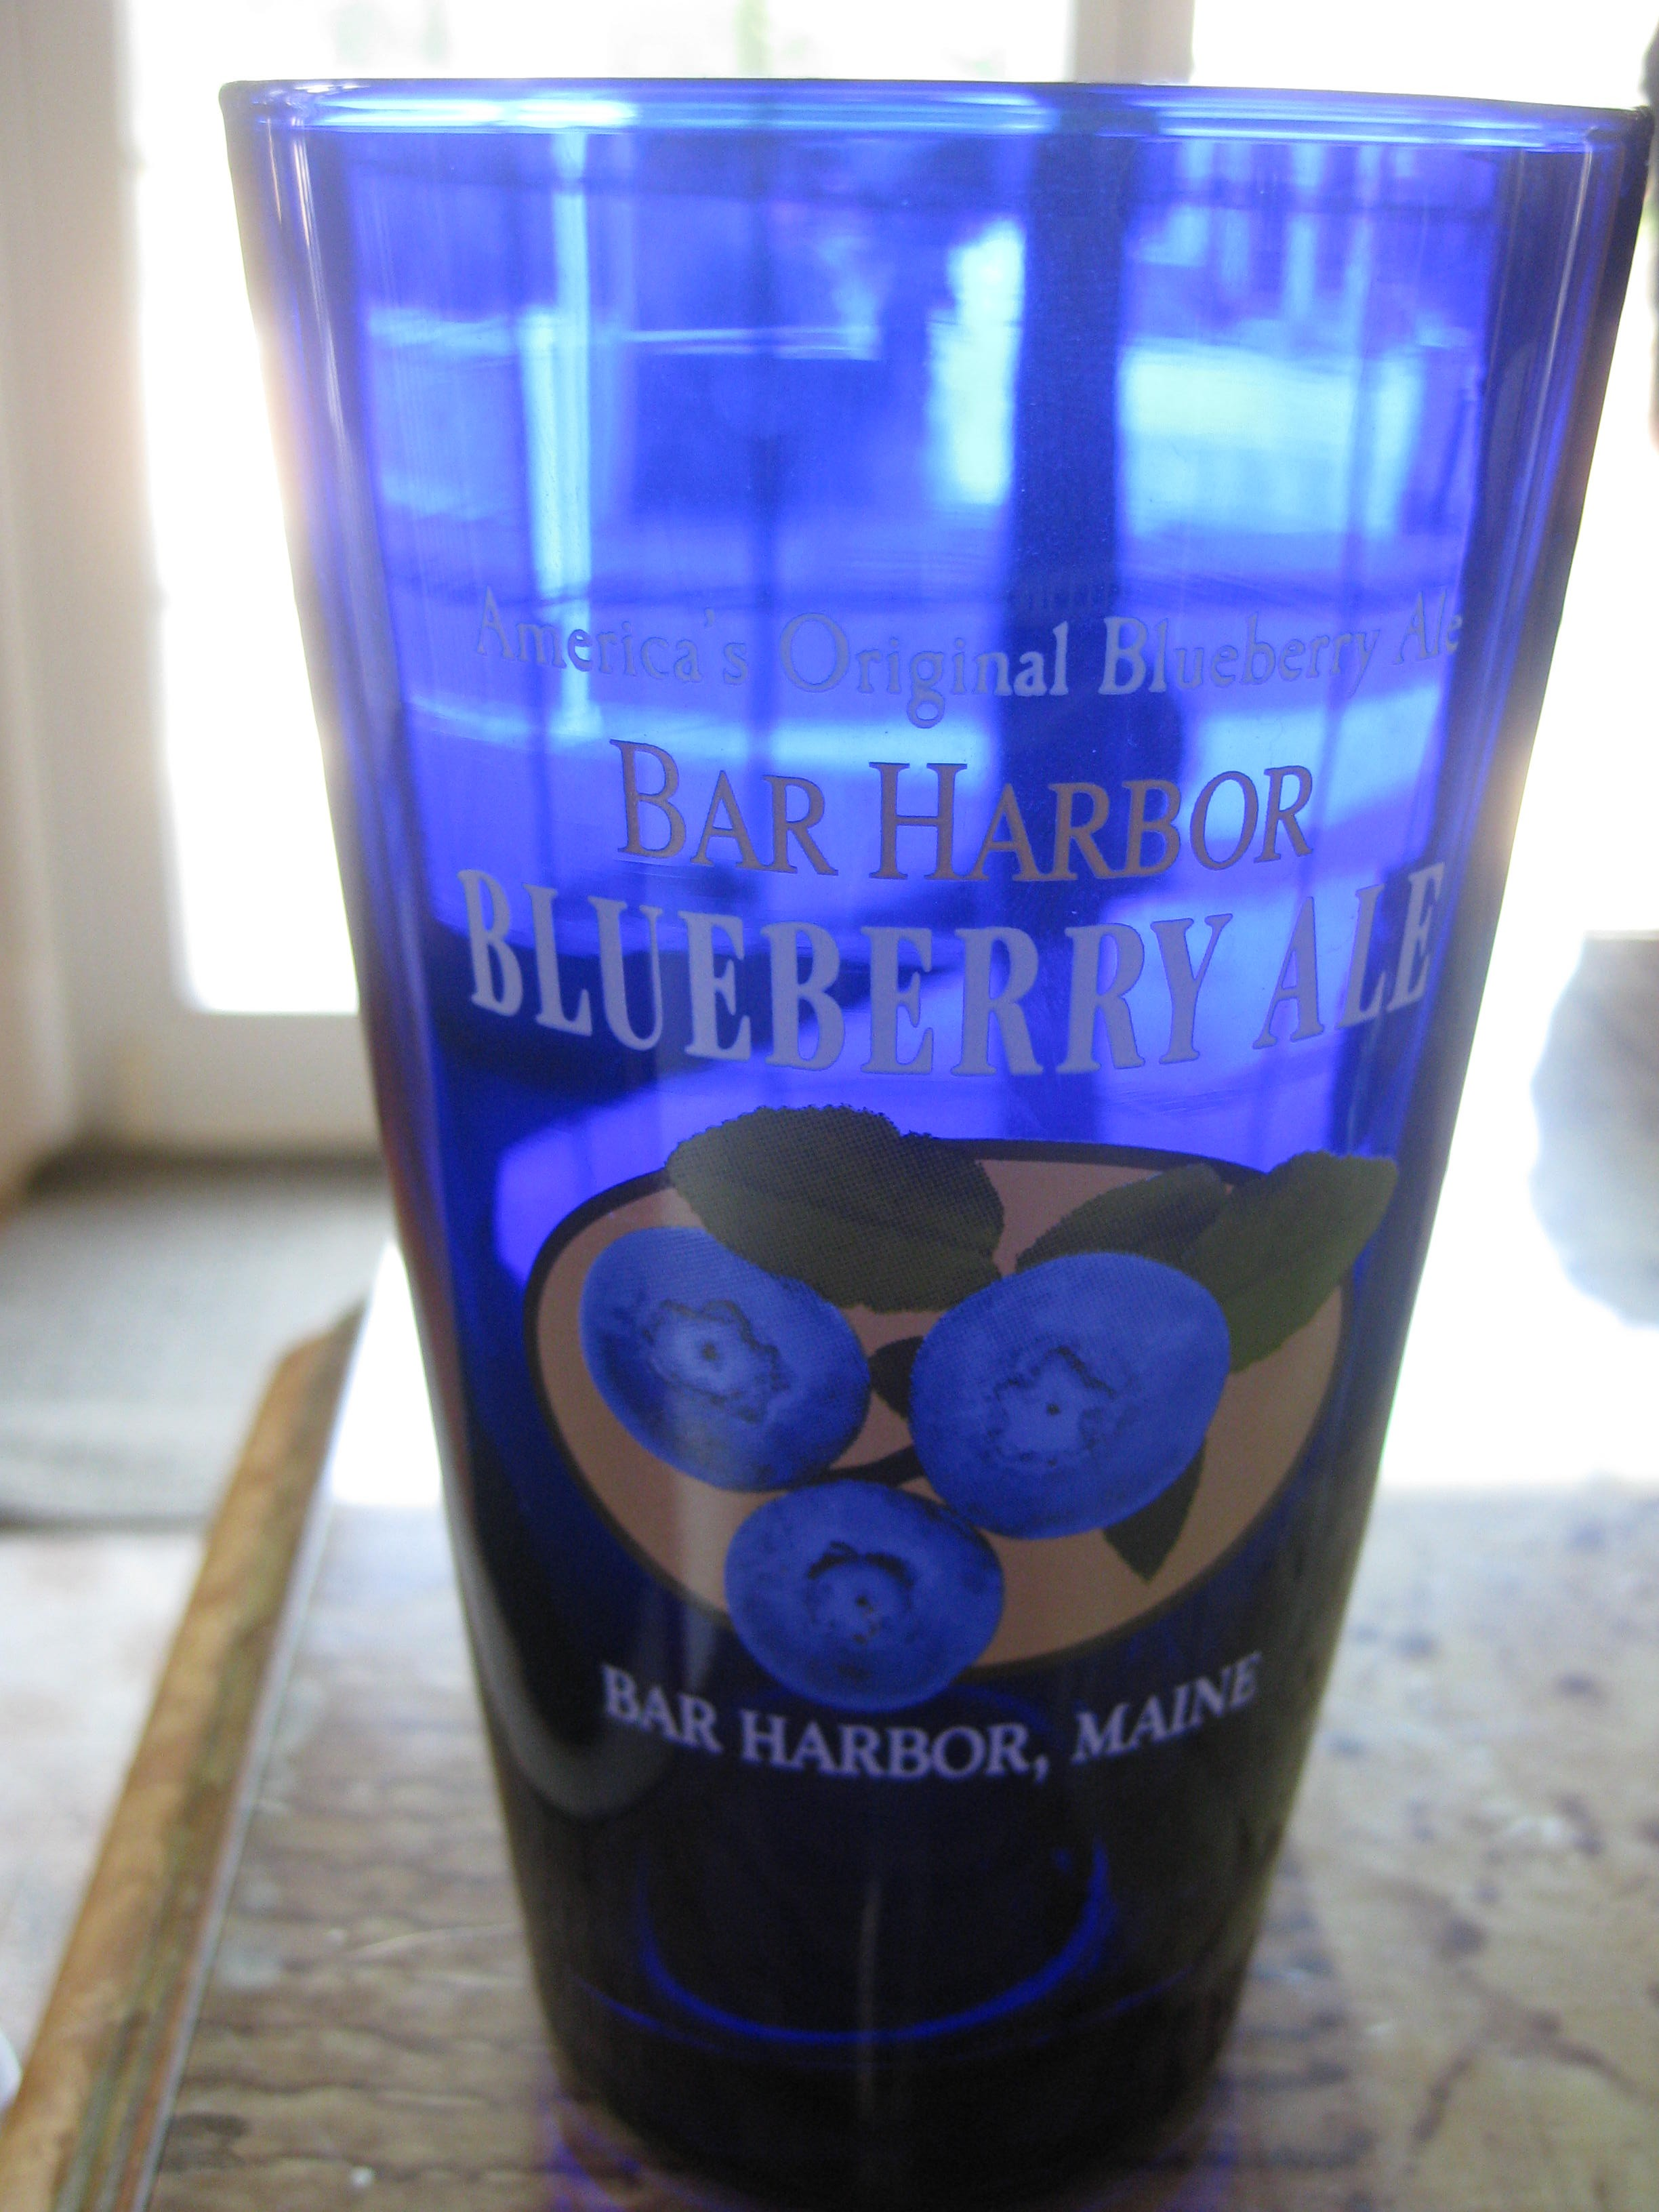 Blueberry Ale from Bar Harbor, Maine